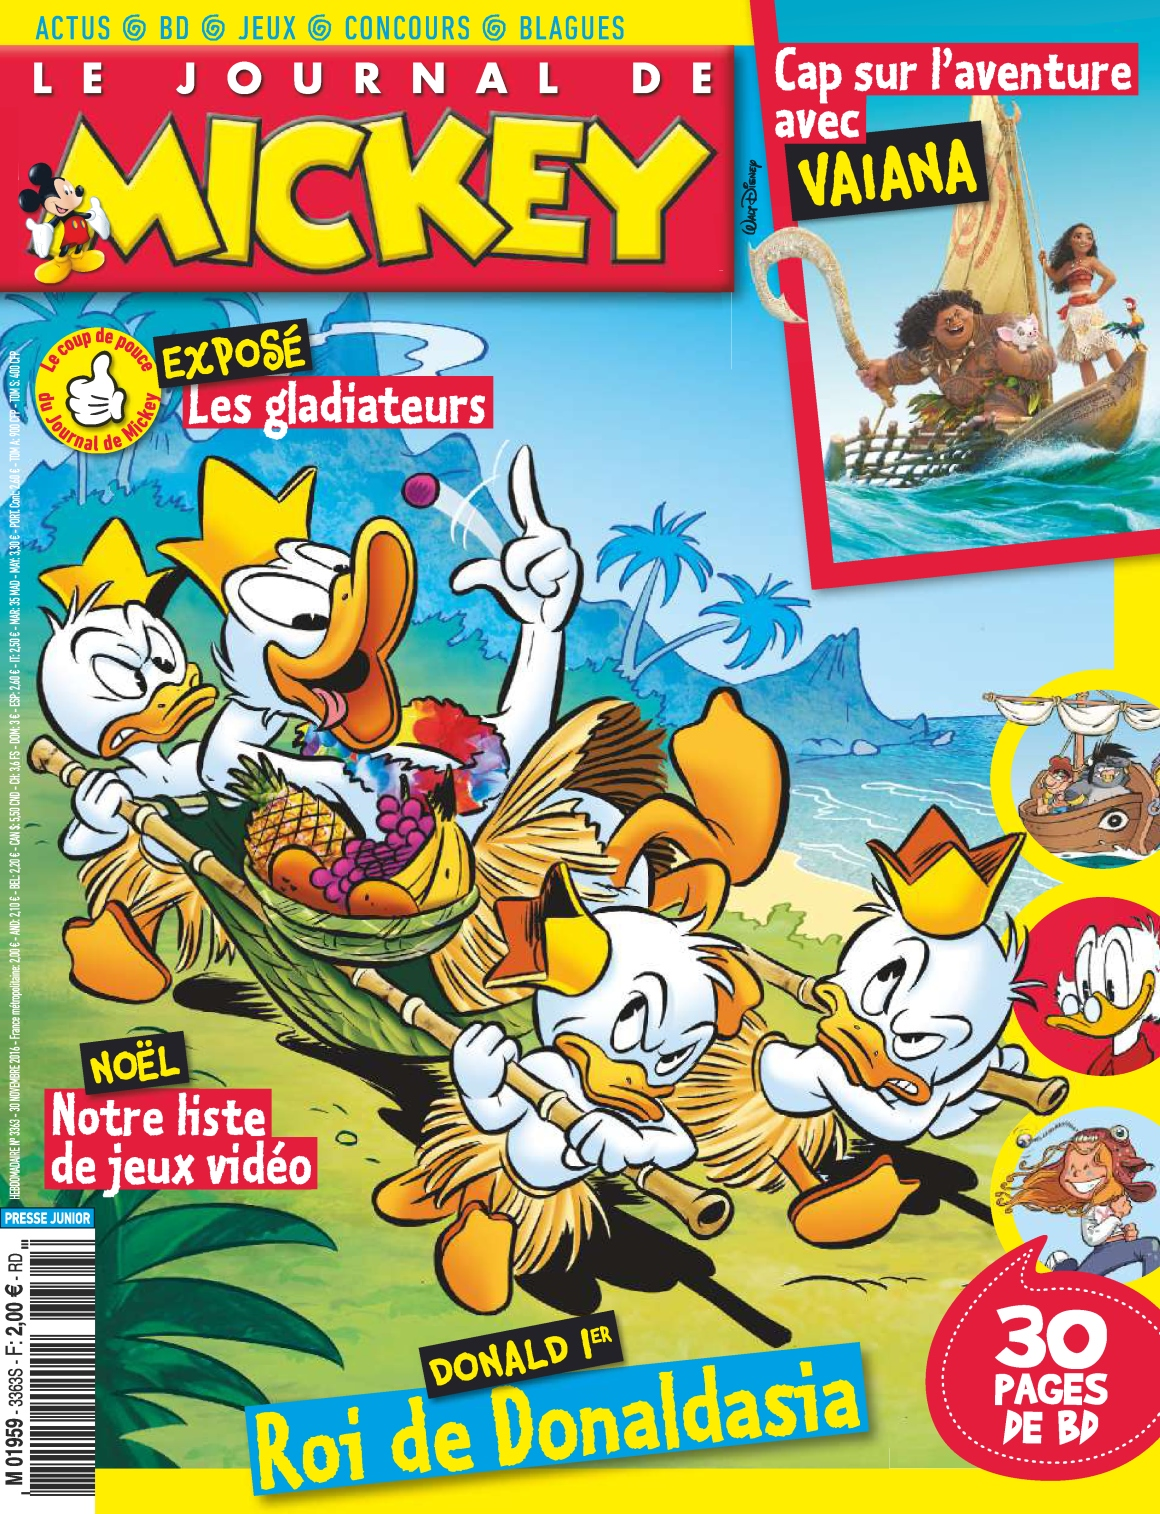 Le Journal de Mickey N°3363 - 30 Novembre 2016